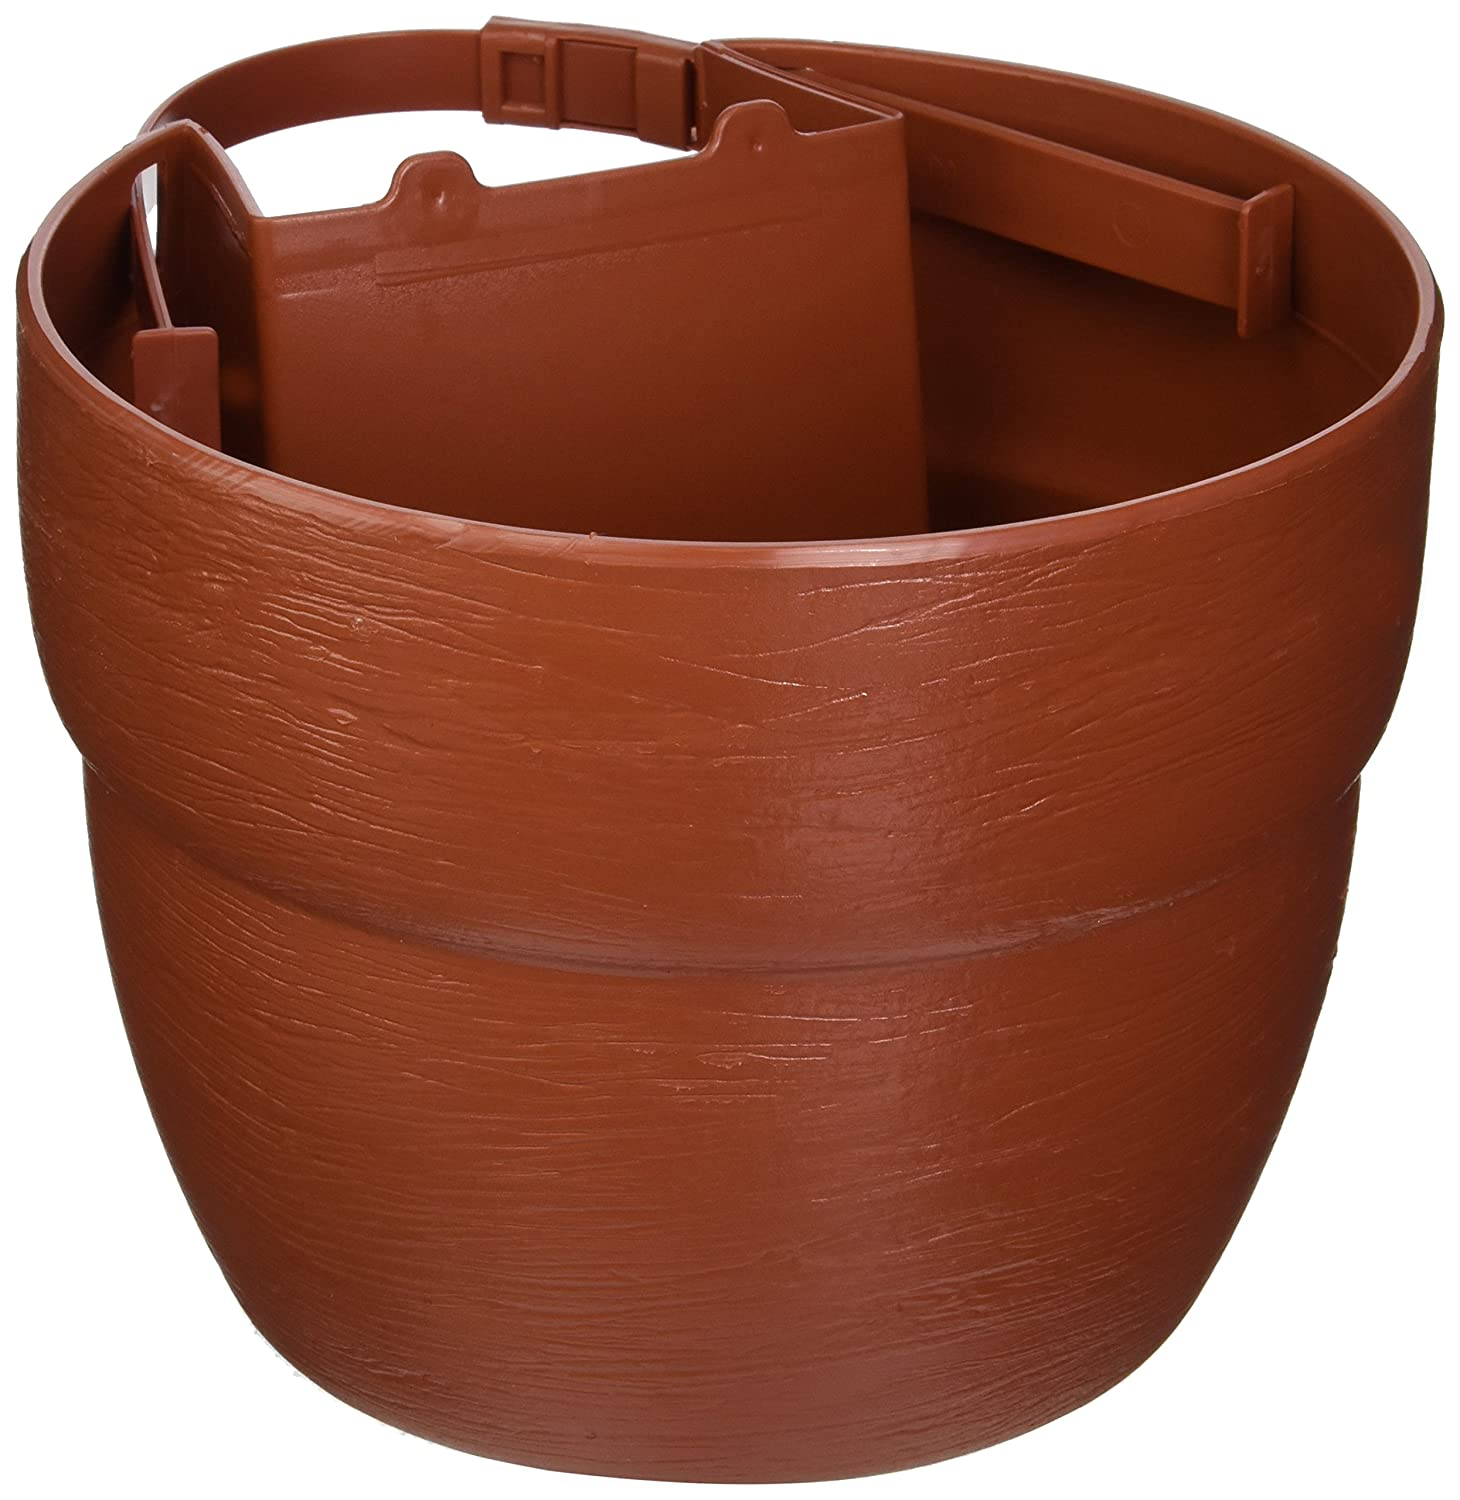 EMSCO Bloomers Post Planter – Both Permanent and Temporary Installation Options – Garden In Untraditional Spaces – Terra Cotta